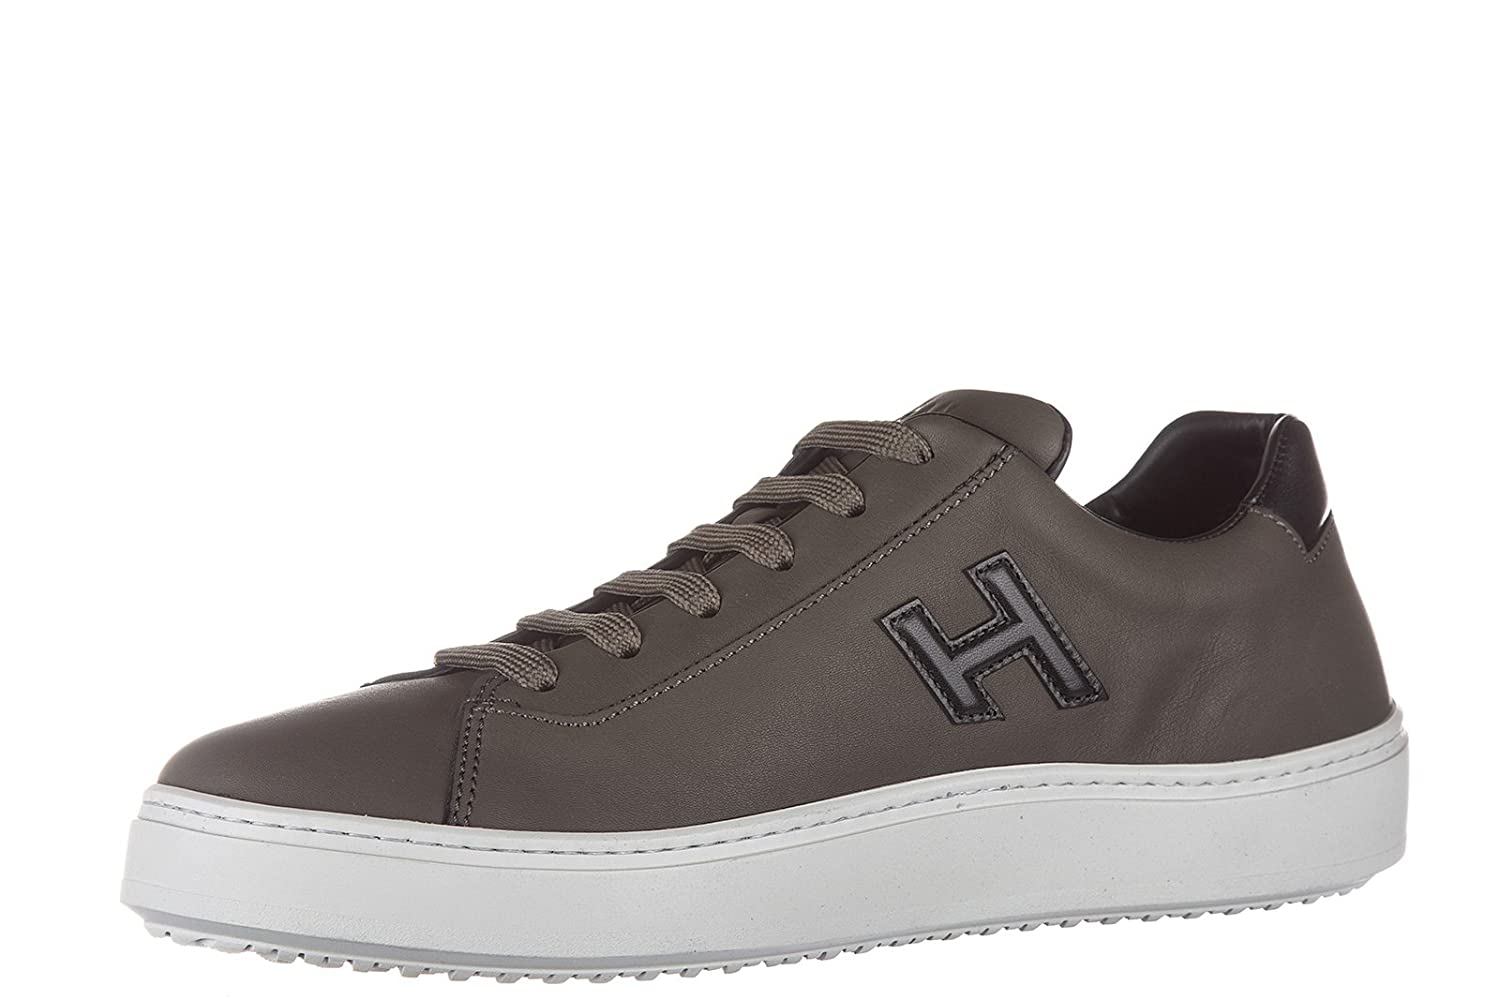 Chaussures baskets sneakers homme en cuir h302 urban cupsole sporty style Hogan wUyoy